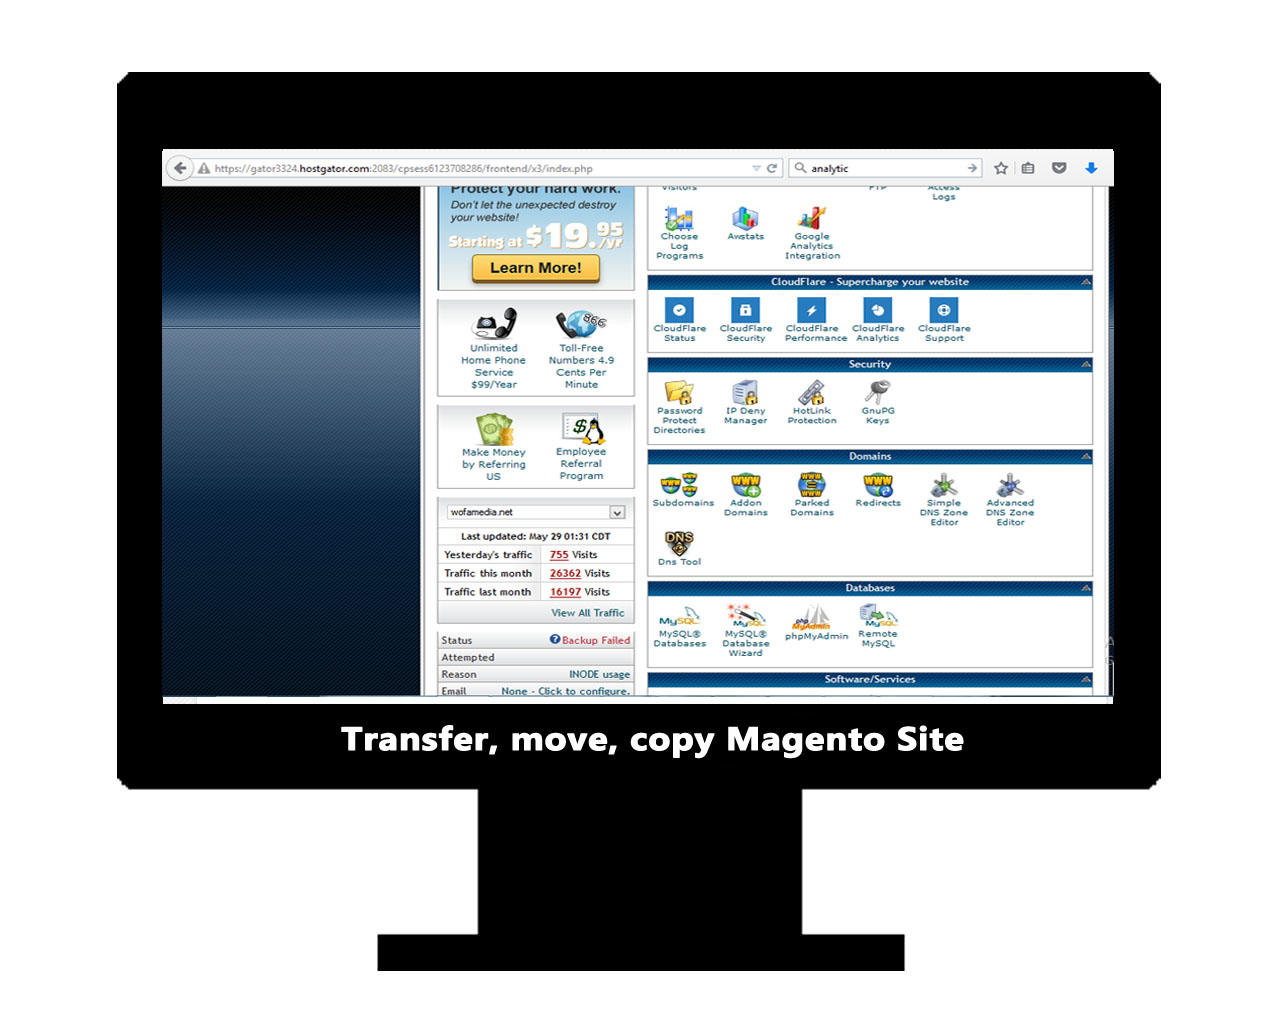 Magento Migration / Move / Transfer / Copy / Cloning from One Server to Another by AritonangWofa - 79898